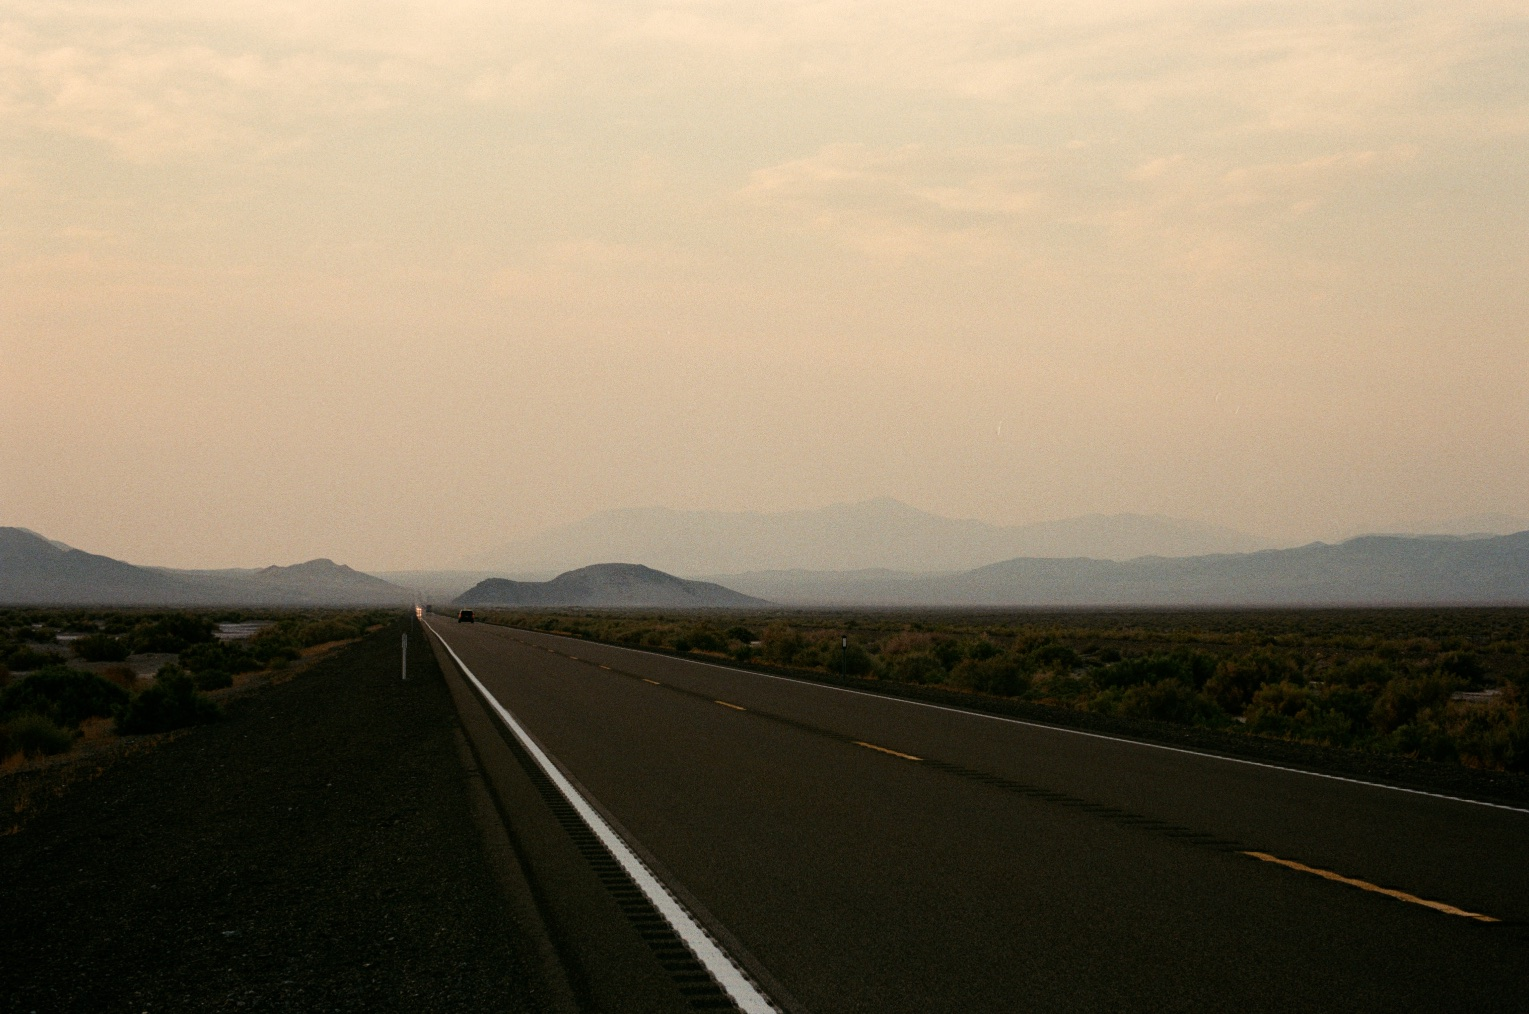 046_CaliforniaRoad2.jpg